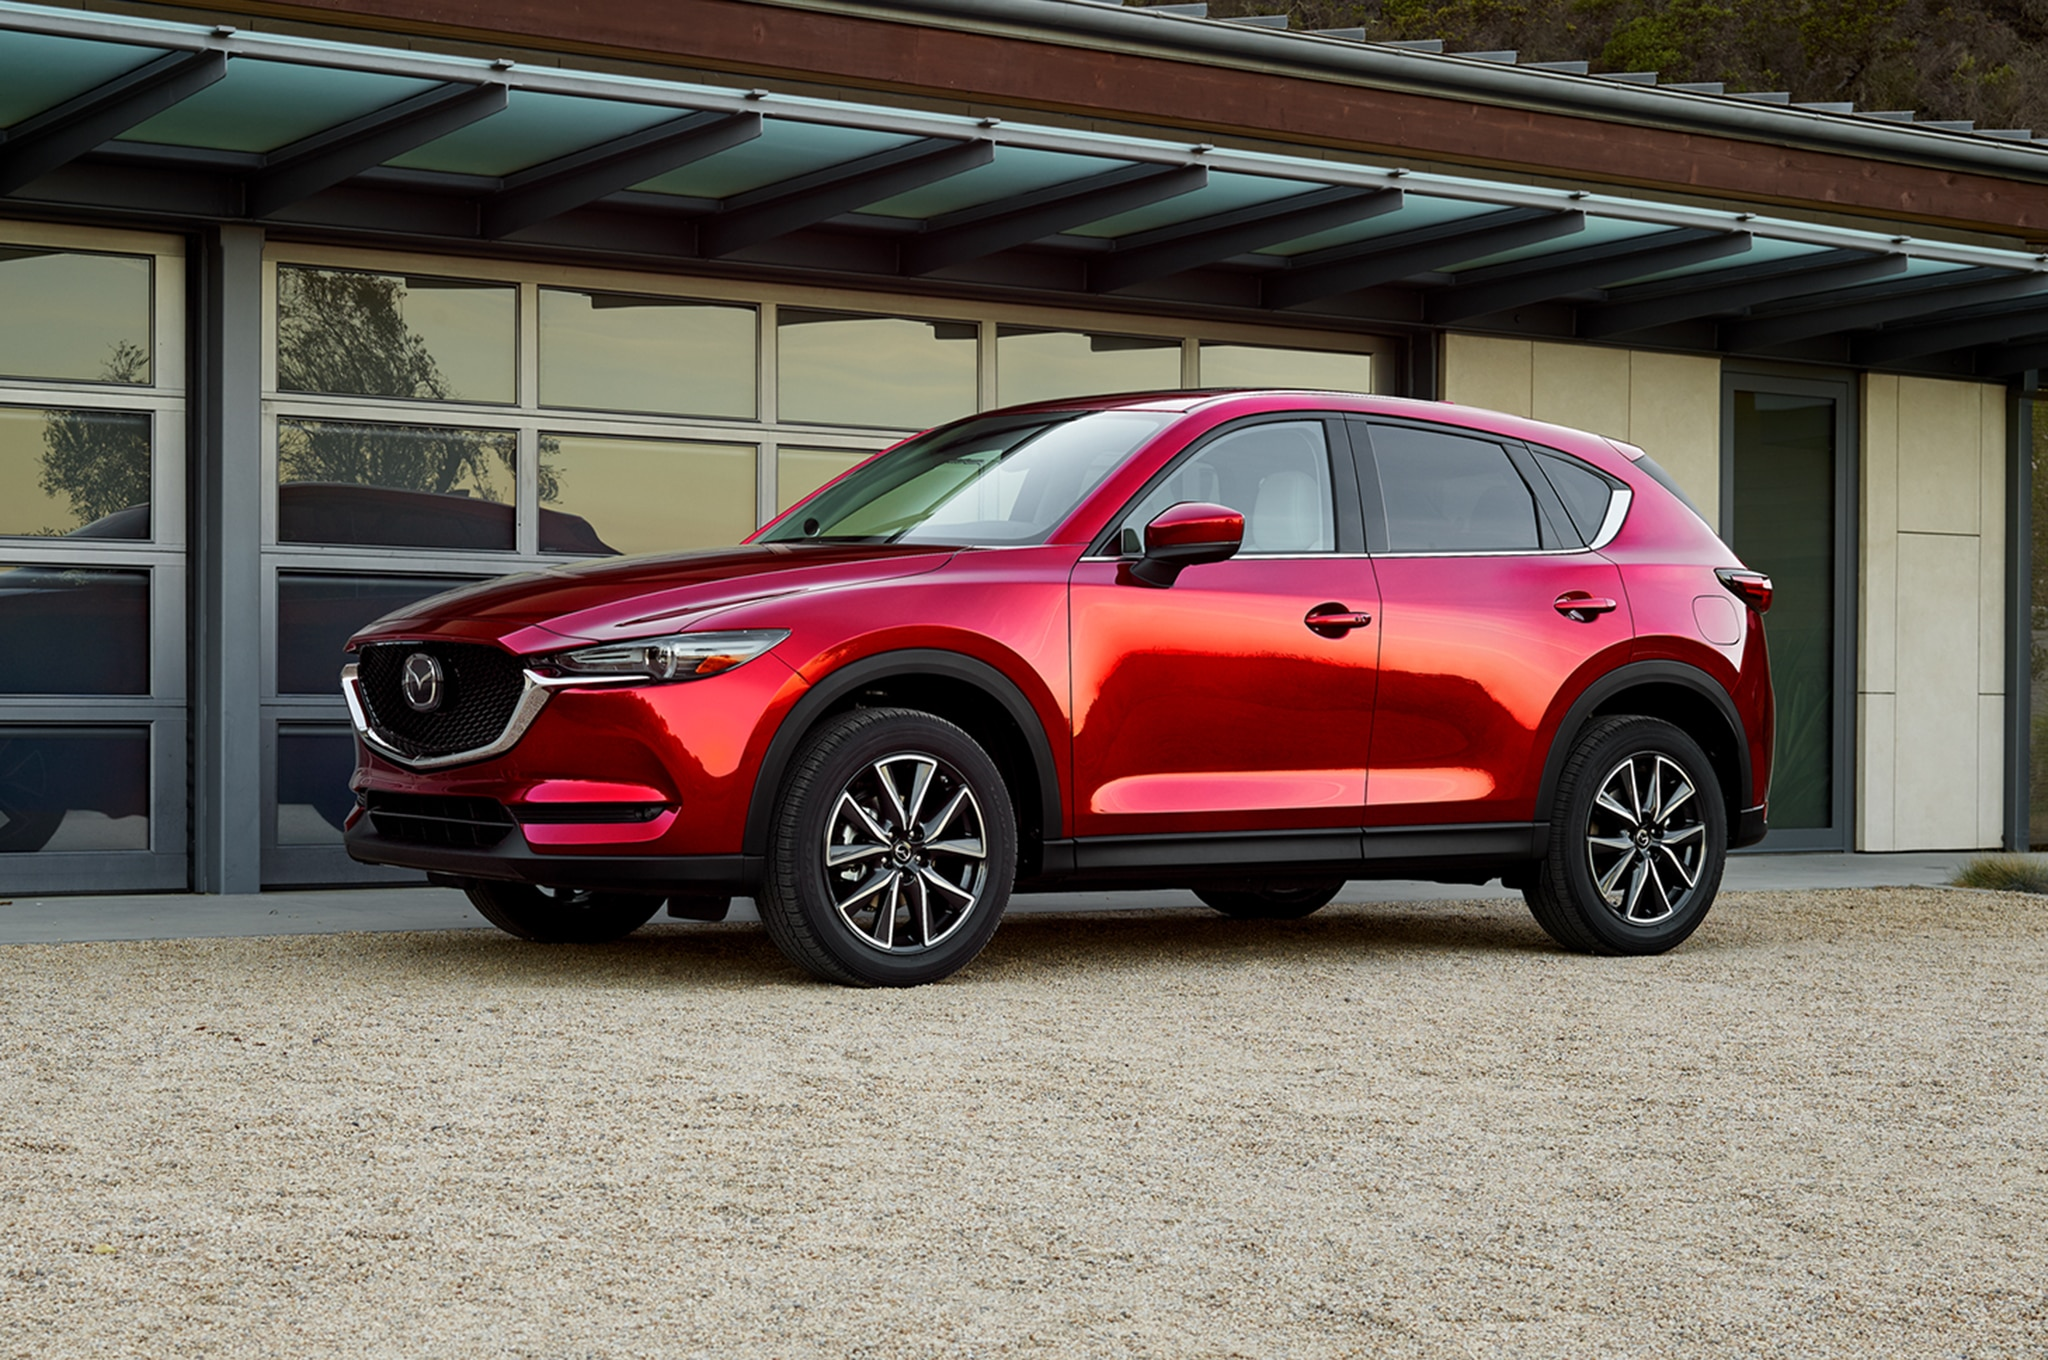 2018 Mazda CX-7: What Rumors Say >> 2018 Mazda Cx 5 Diesel Epa Rated Up To 28 31 Mpg